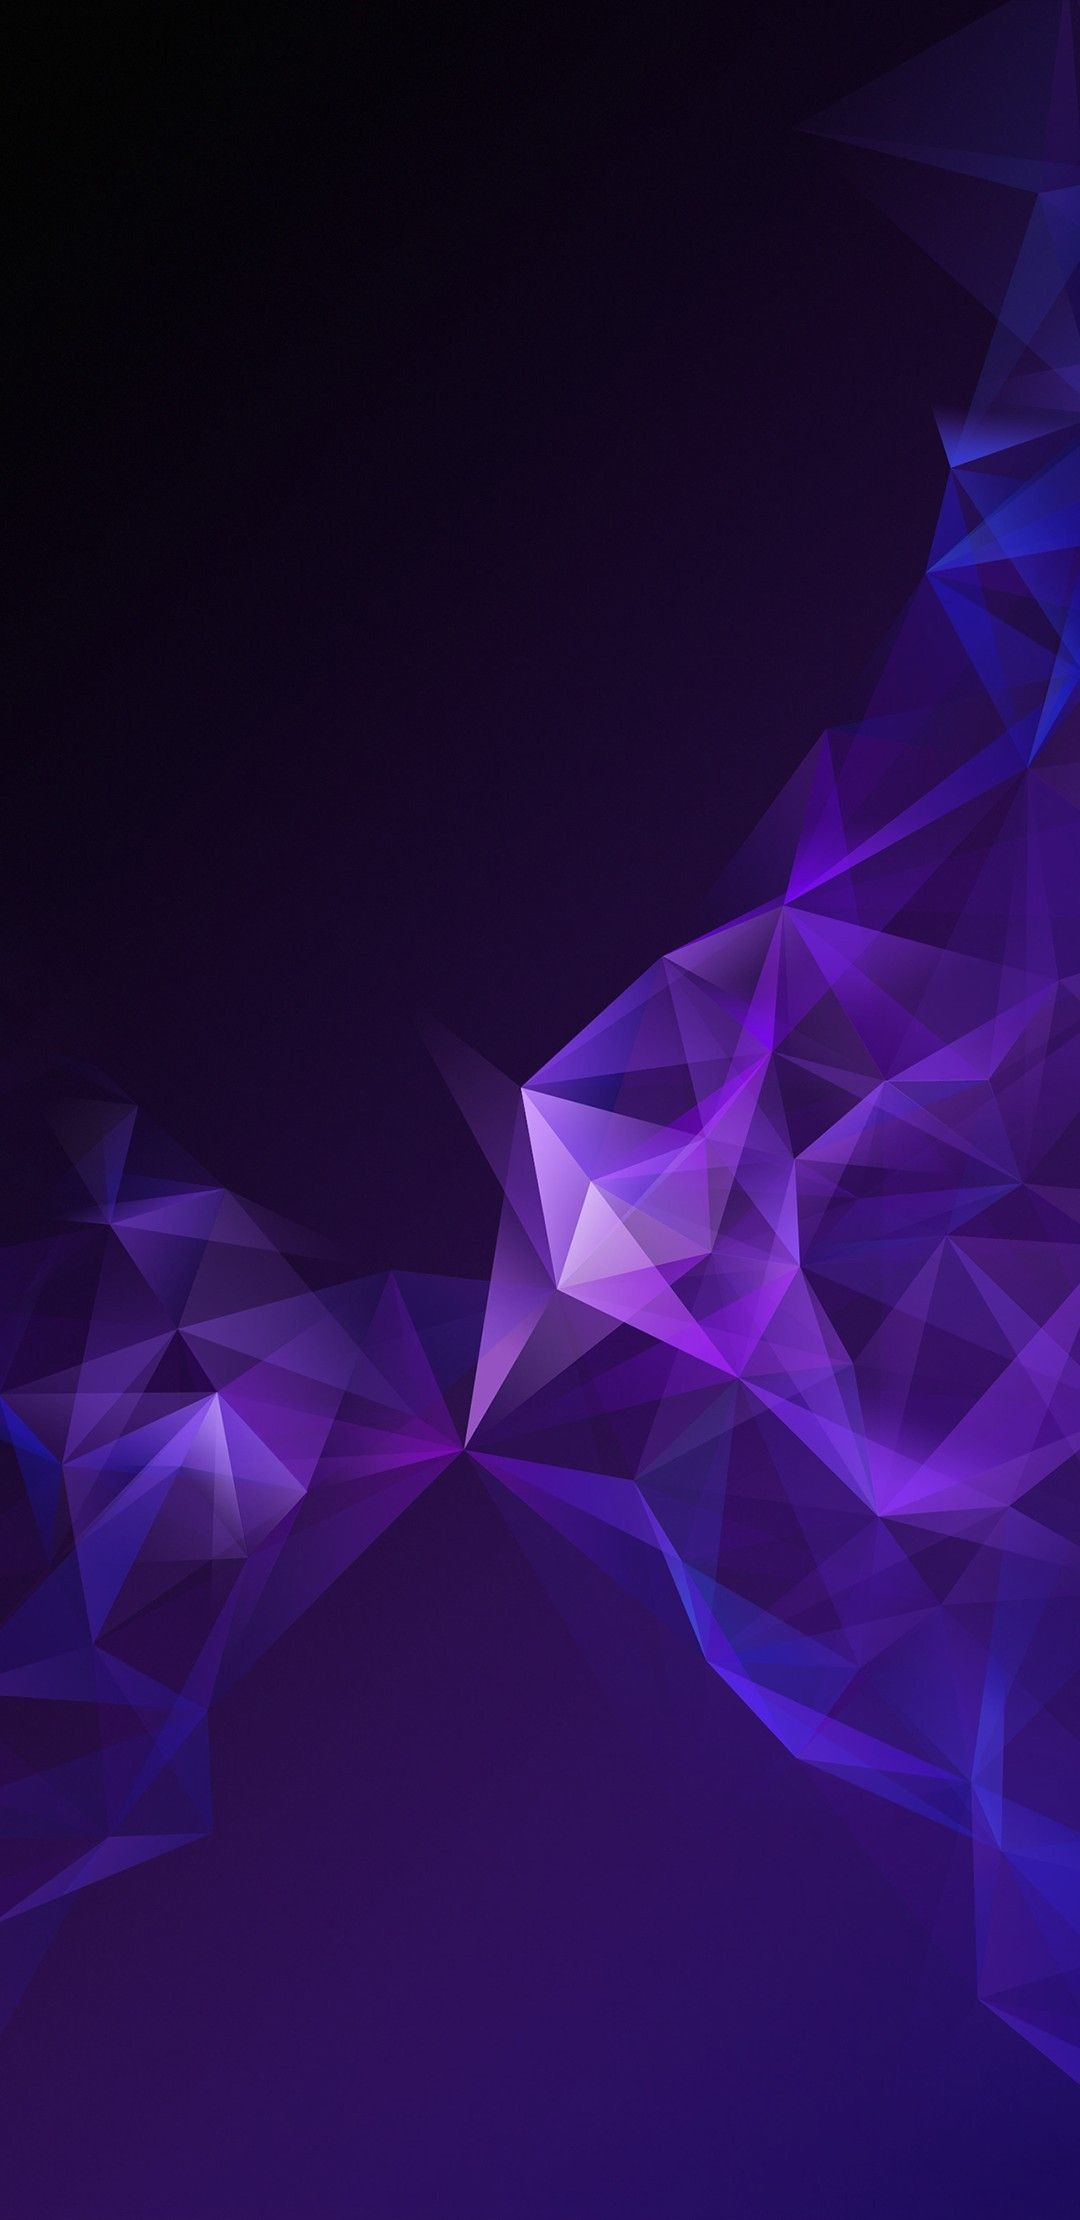 Res: 1080x2220, wallpapers for android and iphone, download dark geometric phone background